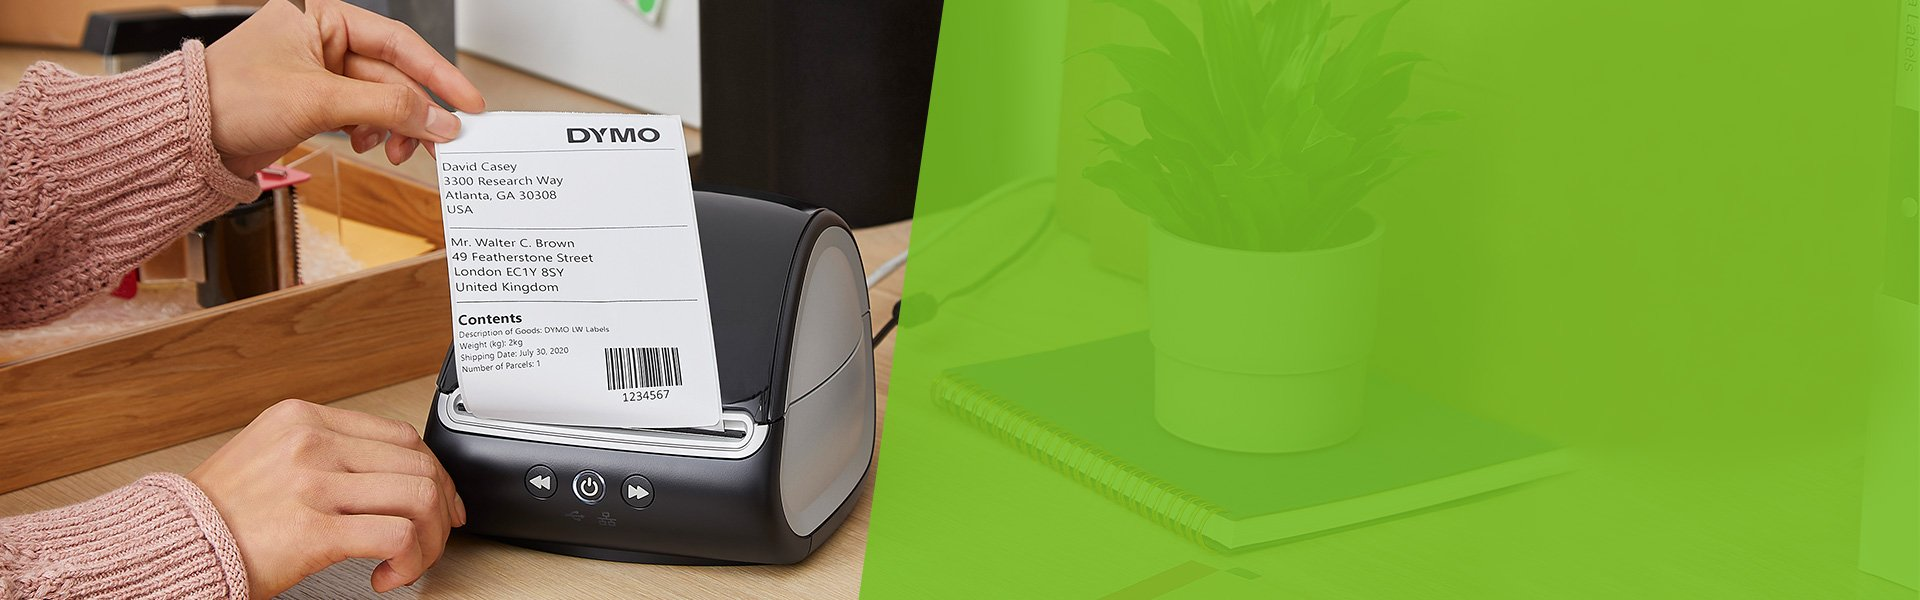 A person tearing a large shipping label from a Label Writer label printer.